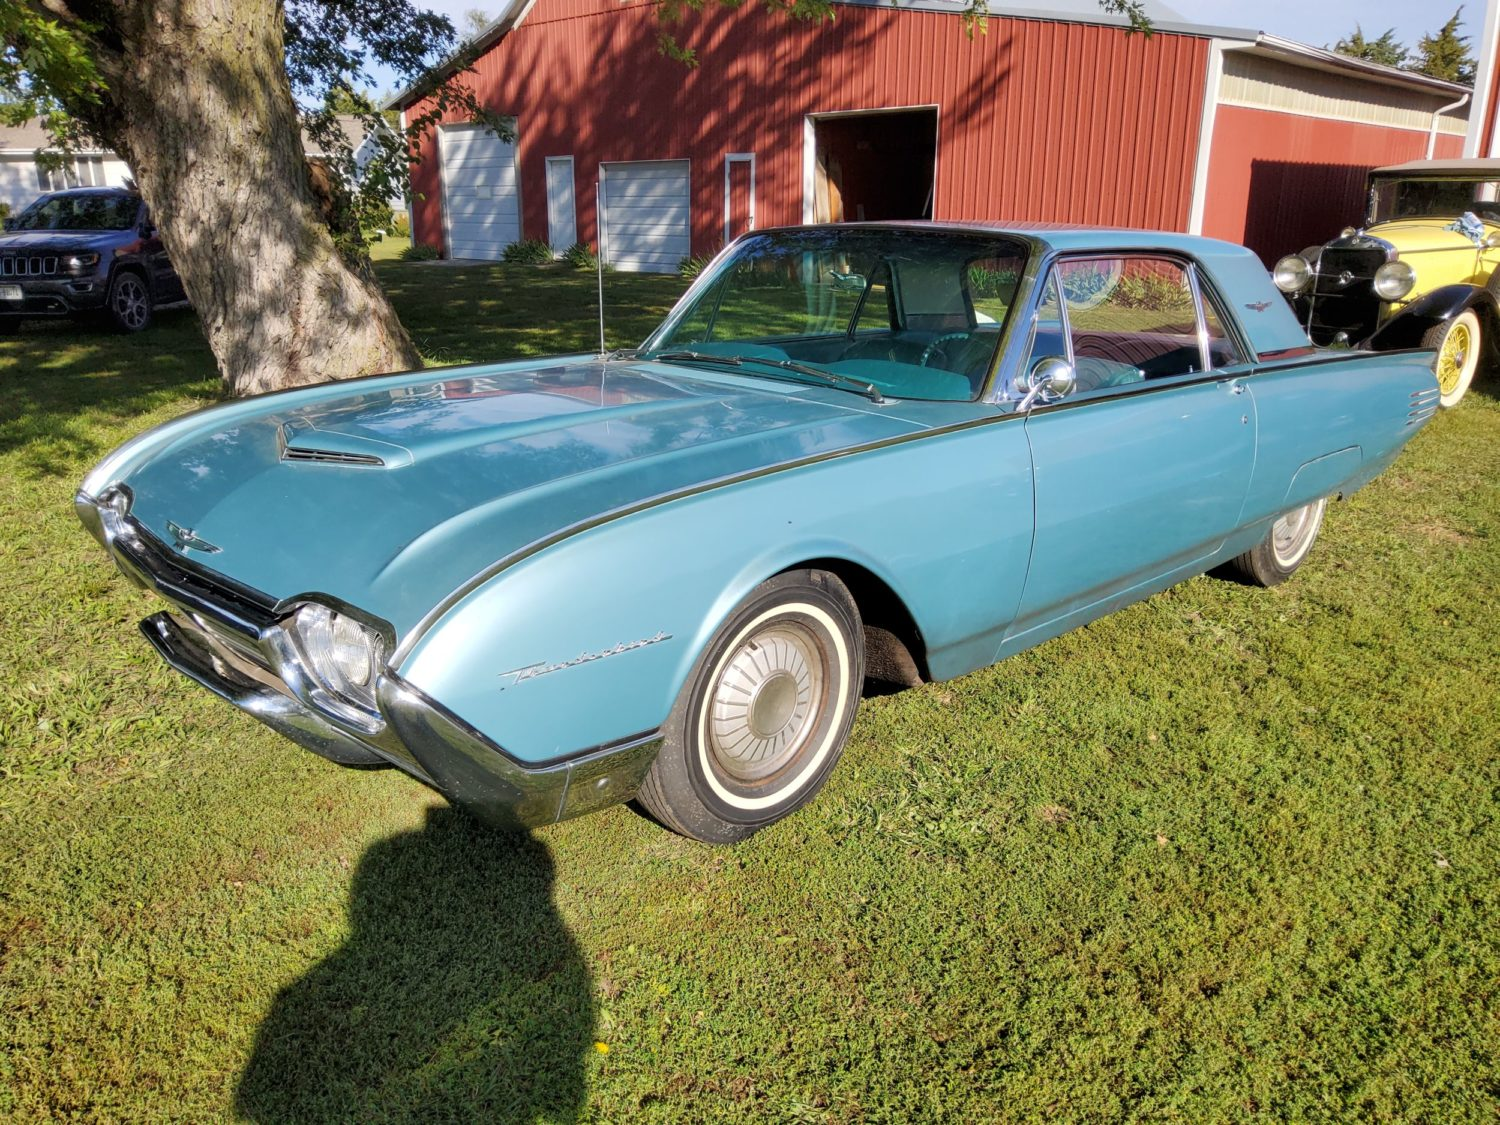 ONLINE ONLY! 1936 Cord, 1959 Cadillac & More Vintage Classic Cars! The John Agee Collection! - image 8